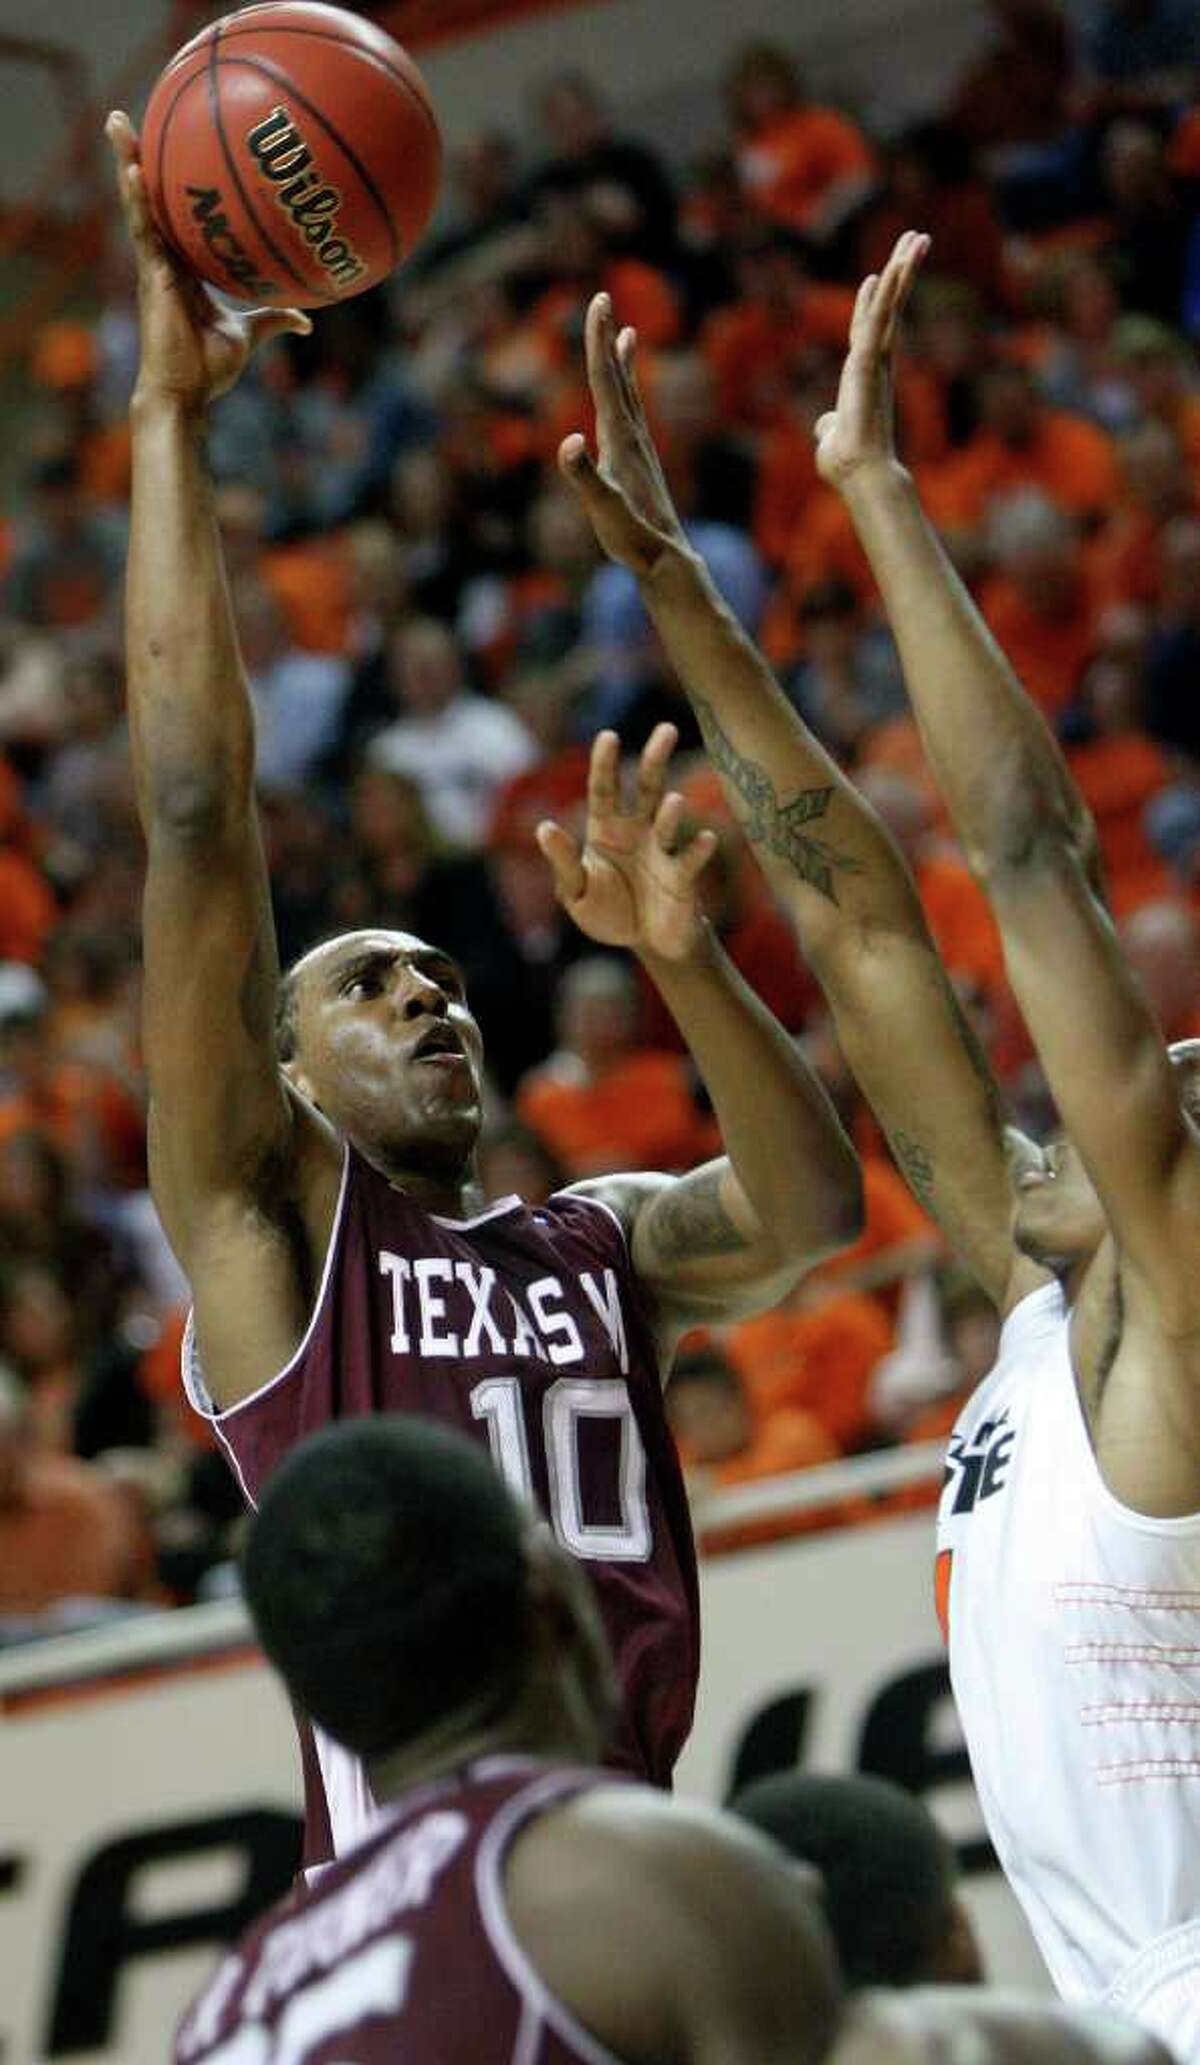 Texas A&M forward David Loubeau (left) shoots over Oklahoma State forward Jarred Shaw in the first half in Stillwater, Okla., on Saturday, Feb. 19, 2011.